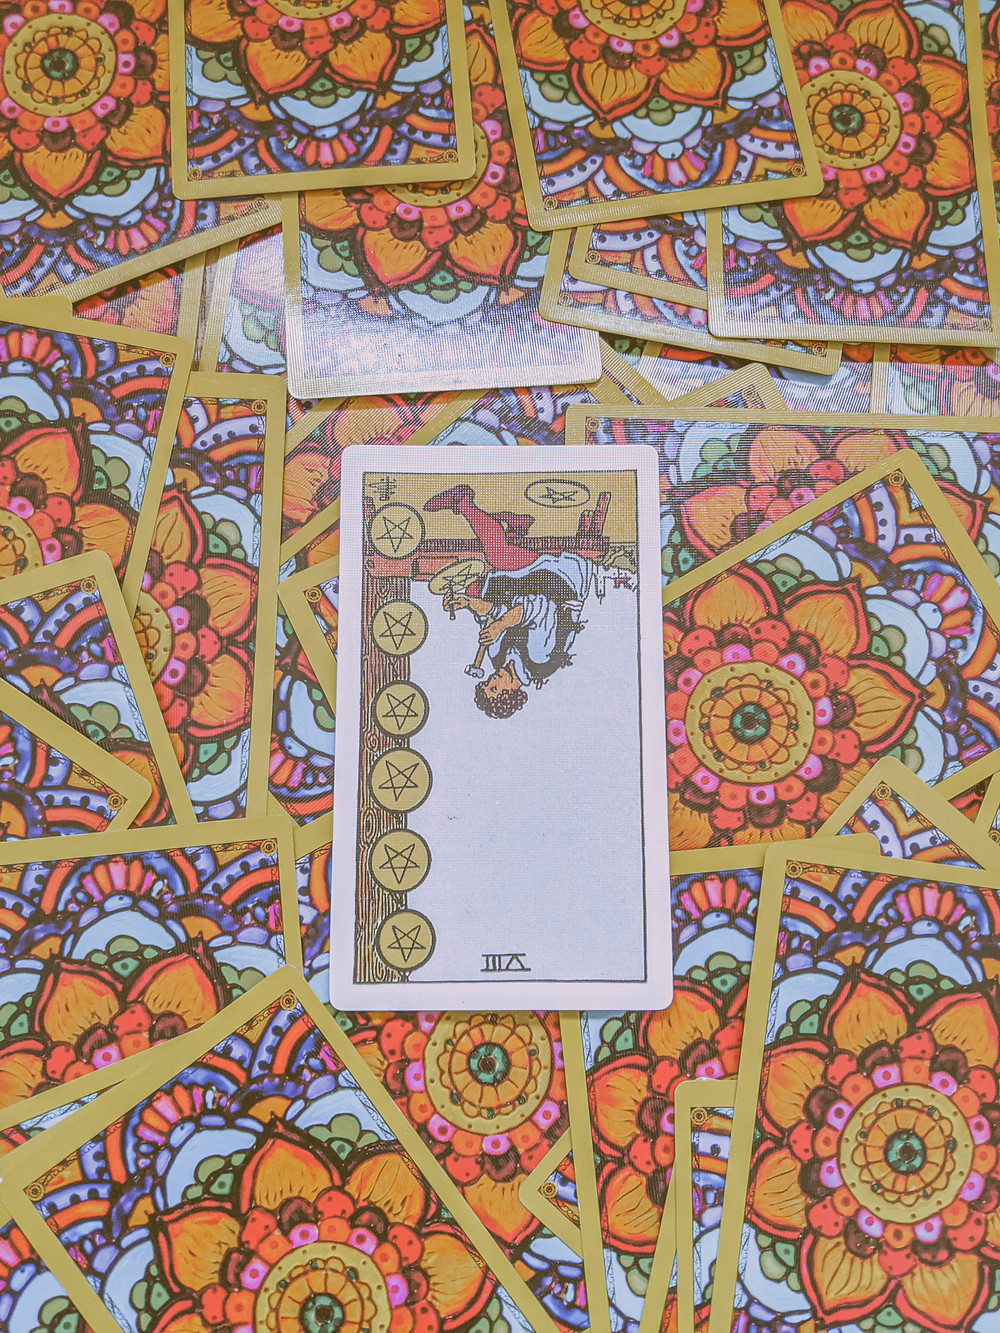 December tarot reading - predictions for the month ahead